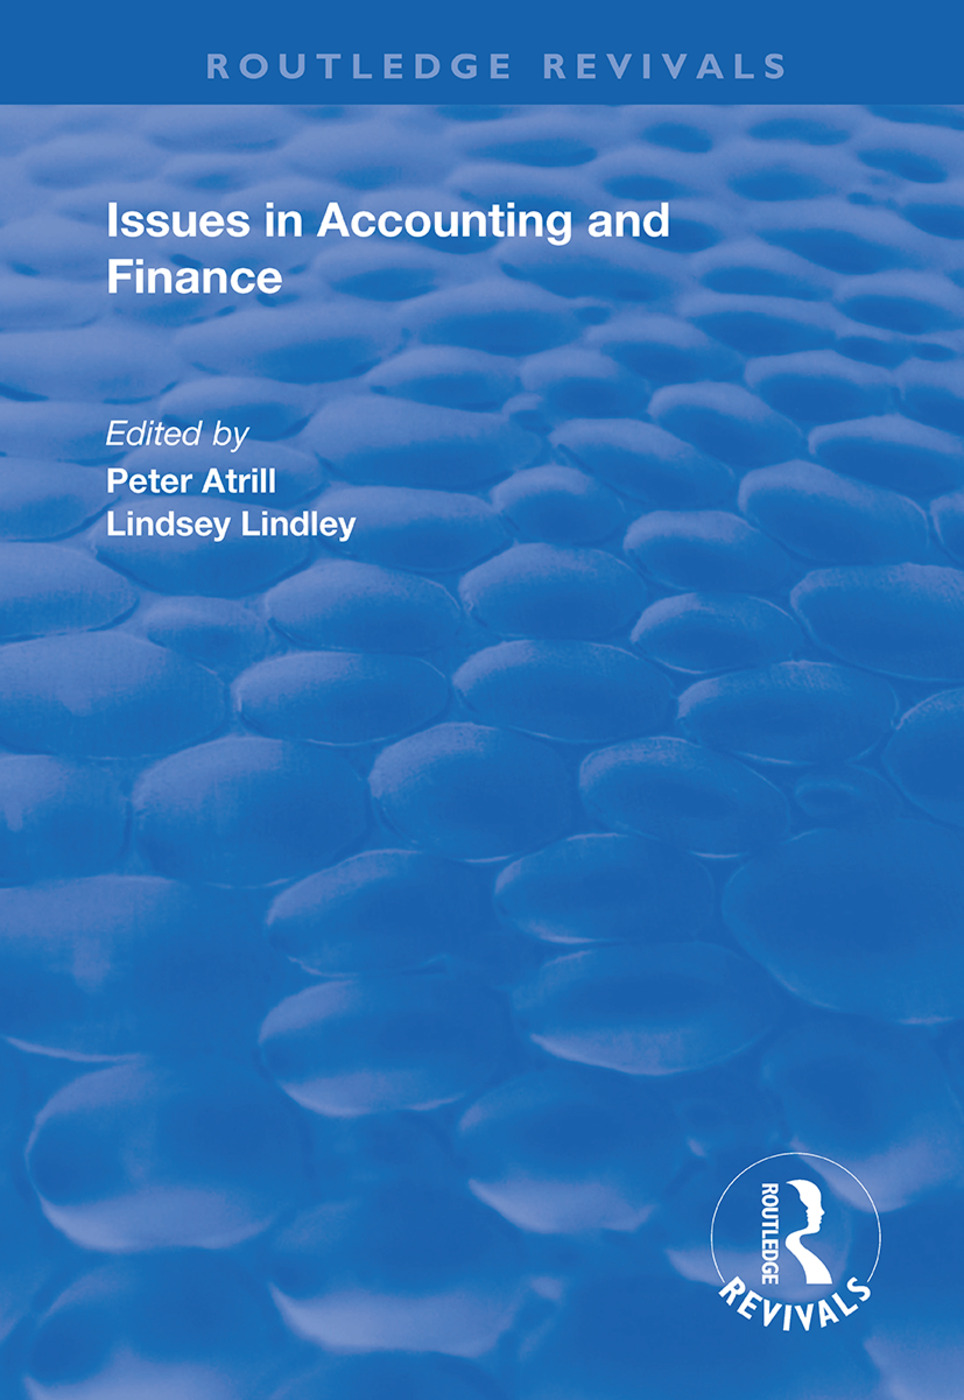 Professional journals, accounting systems and engineers